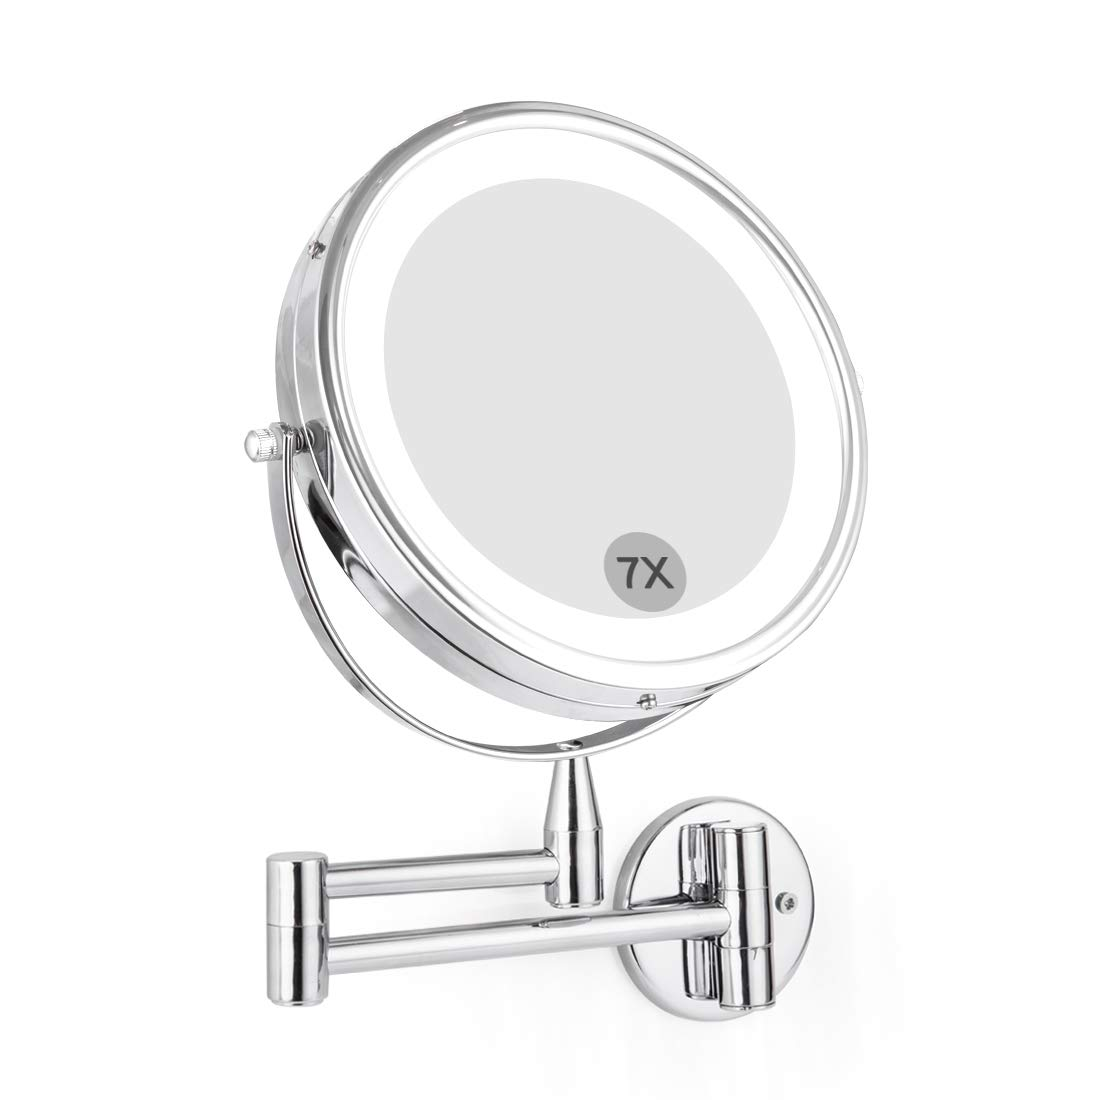 "Wall Mounted LED Magnifying Mirror 7X Makeup 8"" Lighted Double Side 360 Degree Vanity Magnification Swivel Extendable Mirror (1X/7X, with light)"